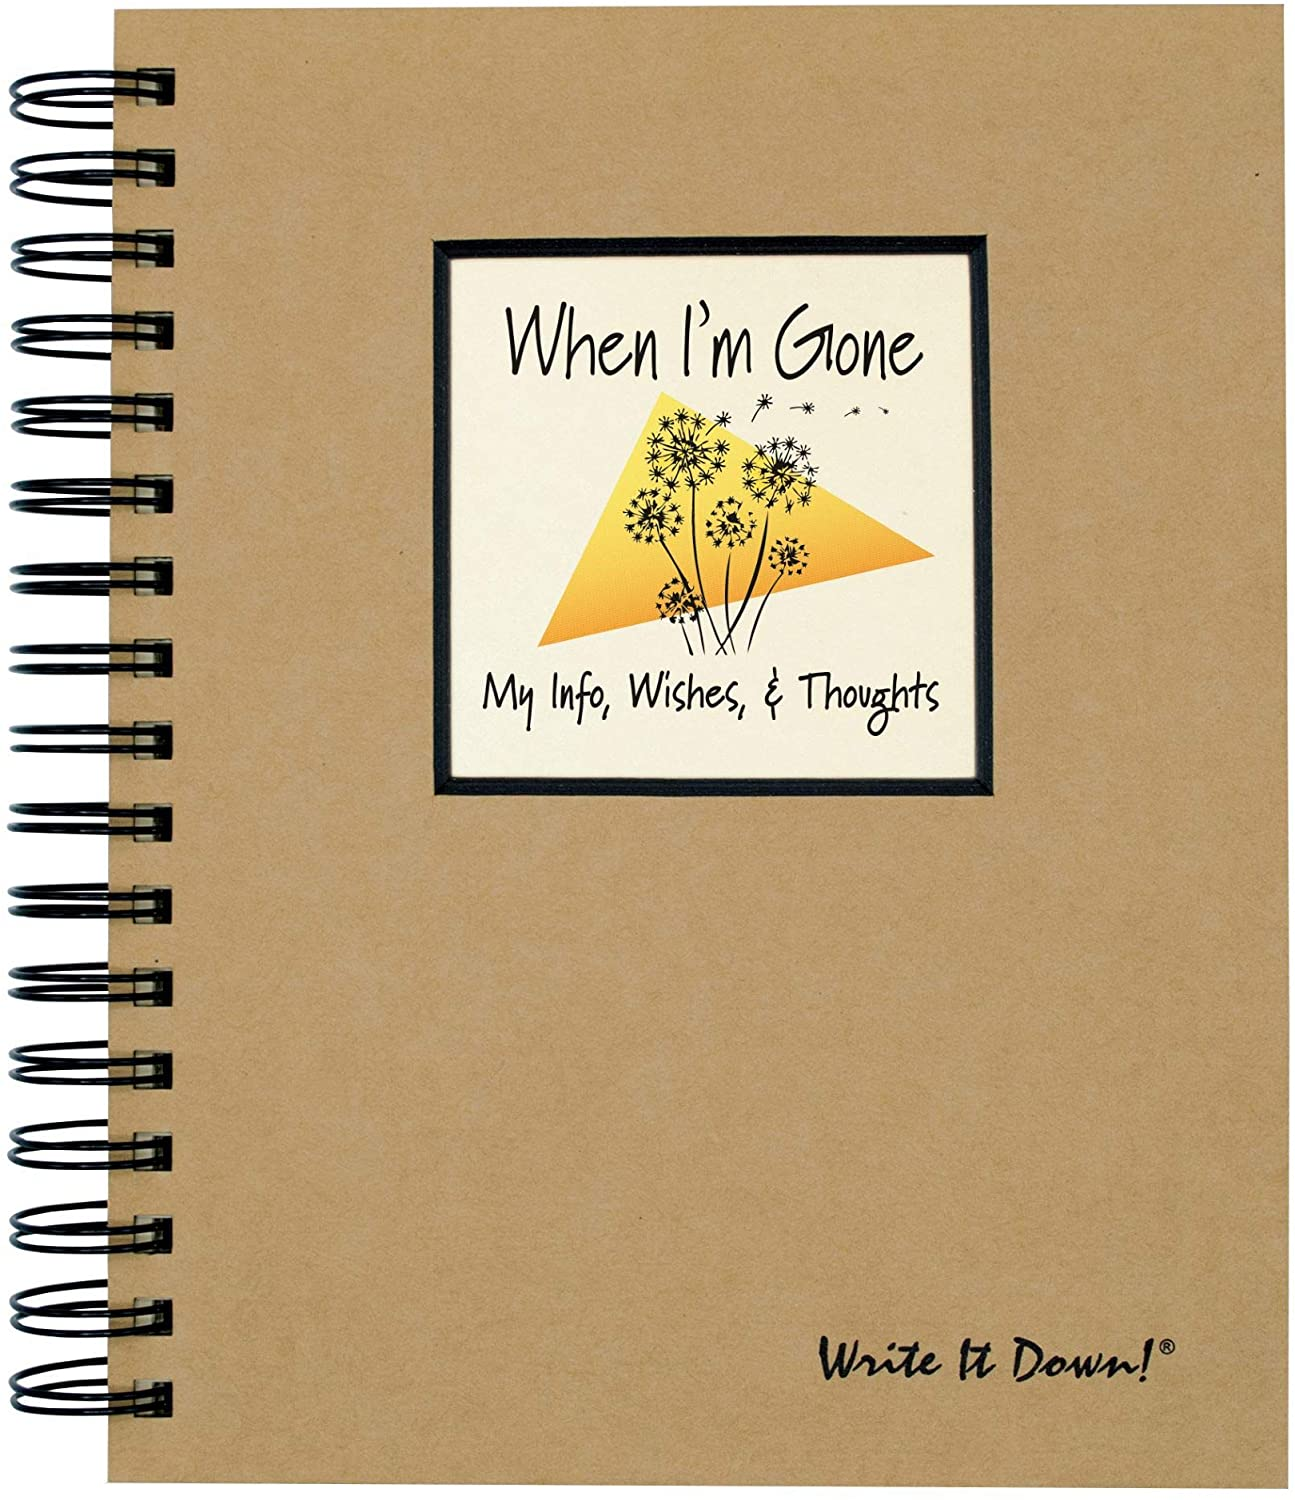 """Journals Unlimited """"Write it Down!"""" Series Guided Journal, When I'm Gone, My Info, Wishes, & Thoughts Journal, with a Kraft Hard Cover, Made of Recycled Materials, 7.5""""x 9"""""""